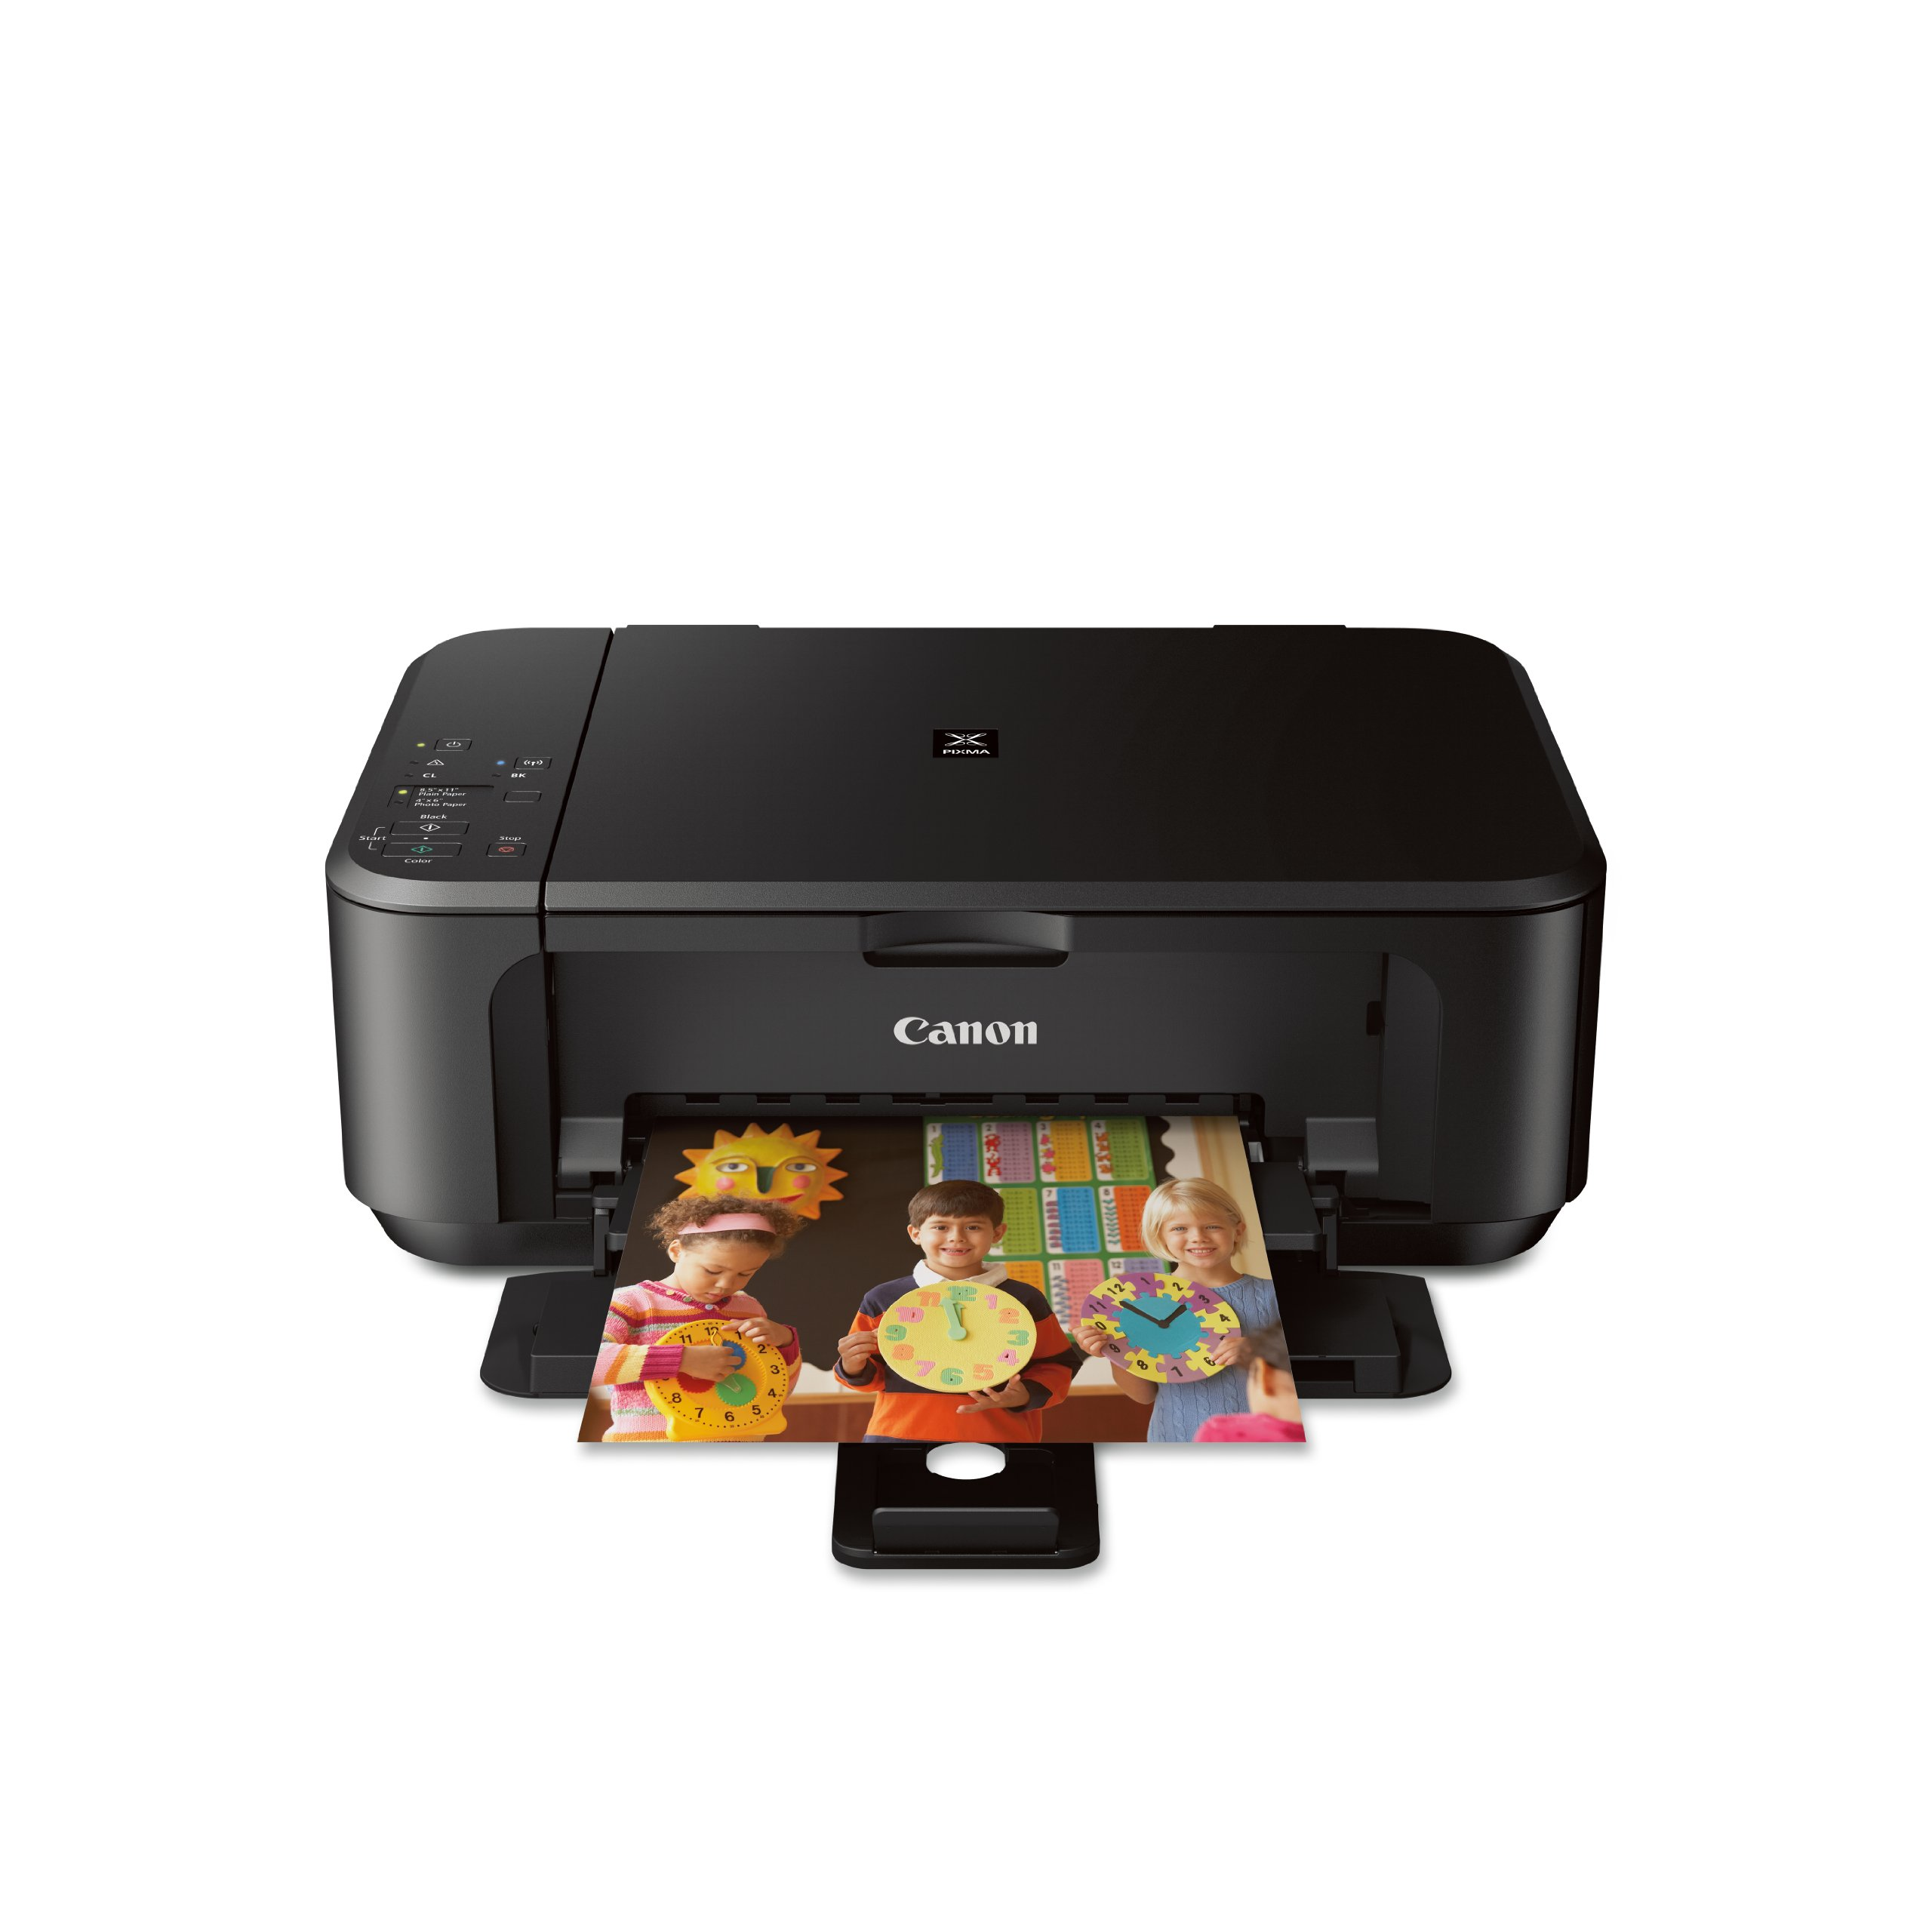 CANON MG3520 SCANNER WINDOWS 10 DRIVERS